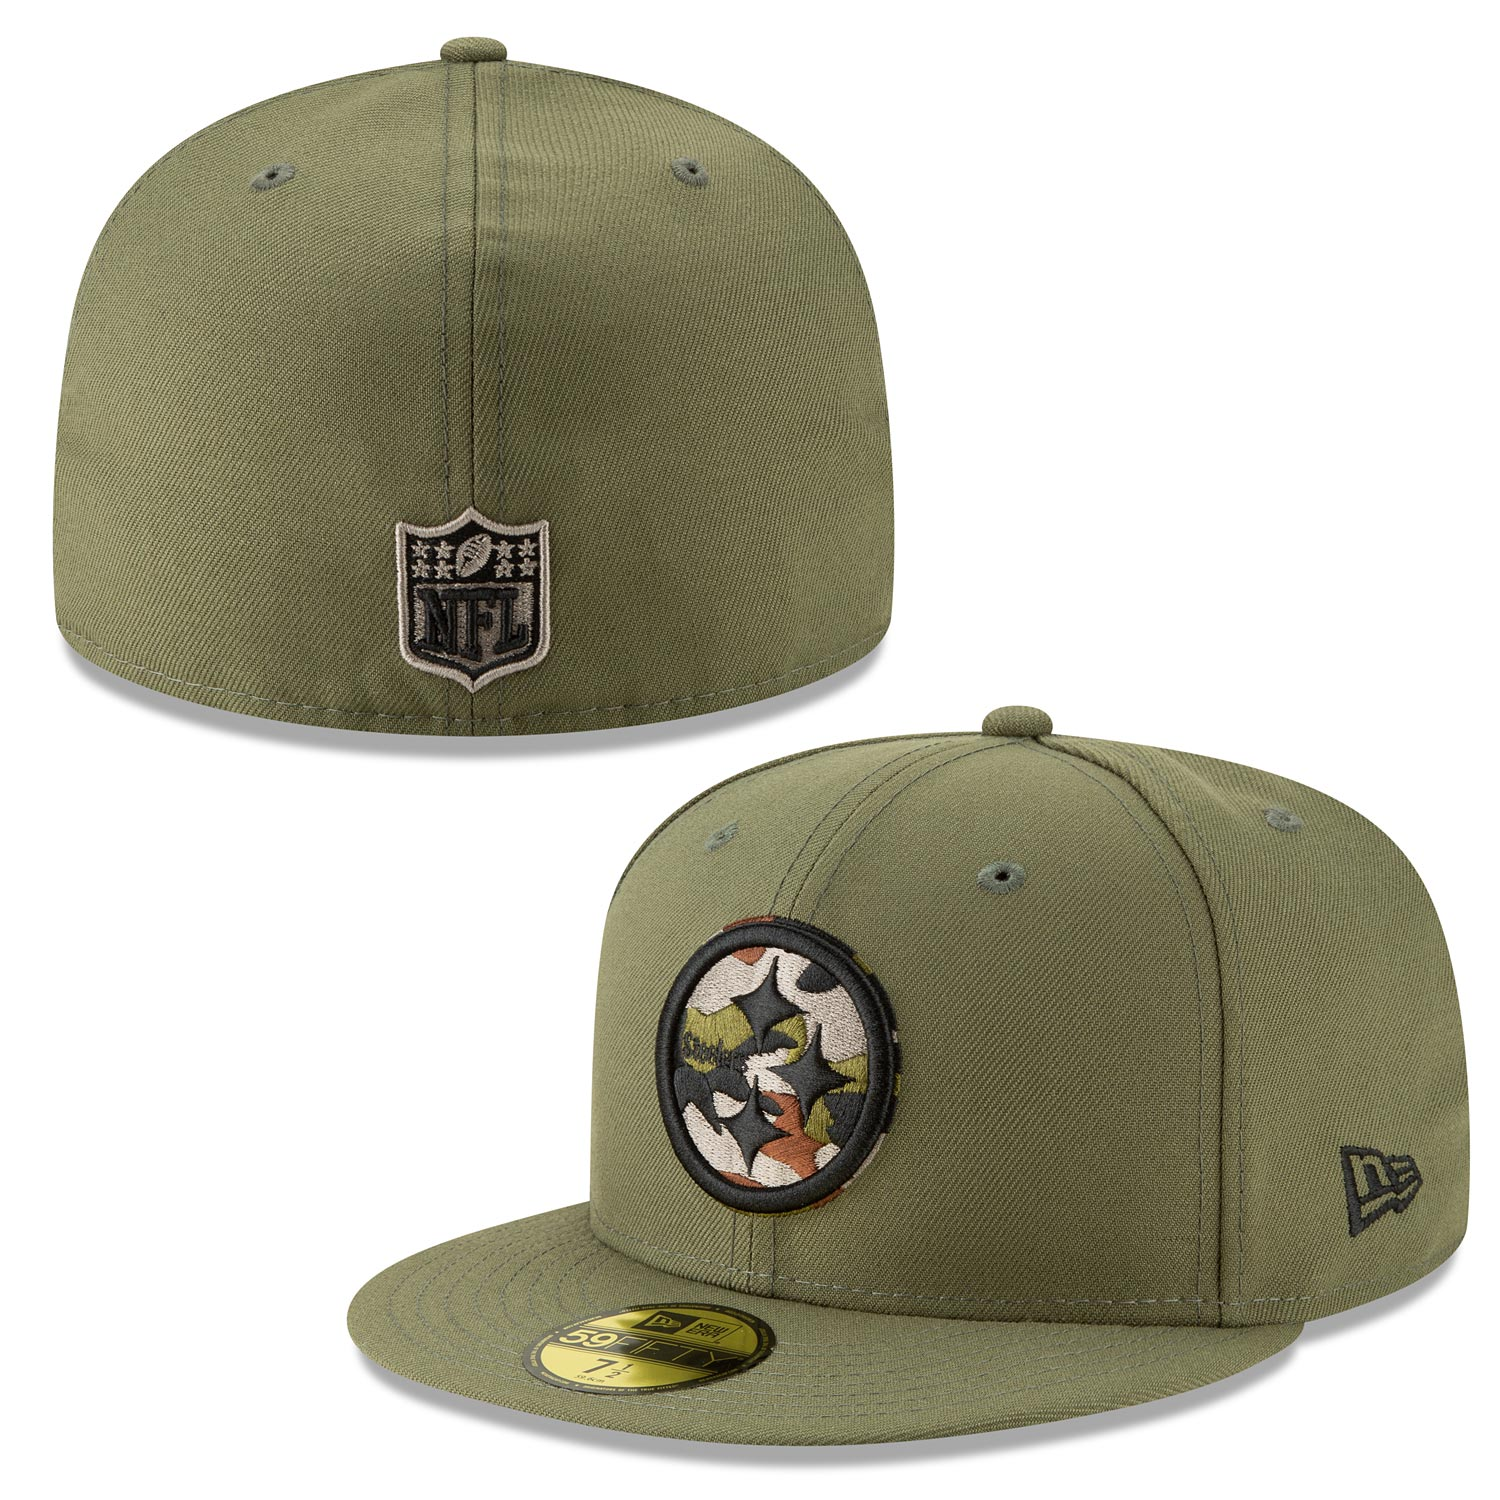 Pittsburgh Steelers Camo Trim 59/50 Fitted Cap